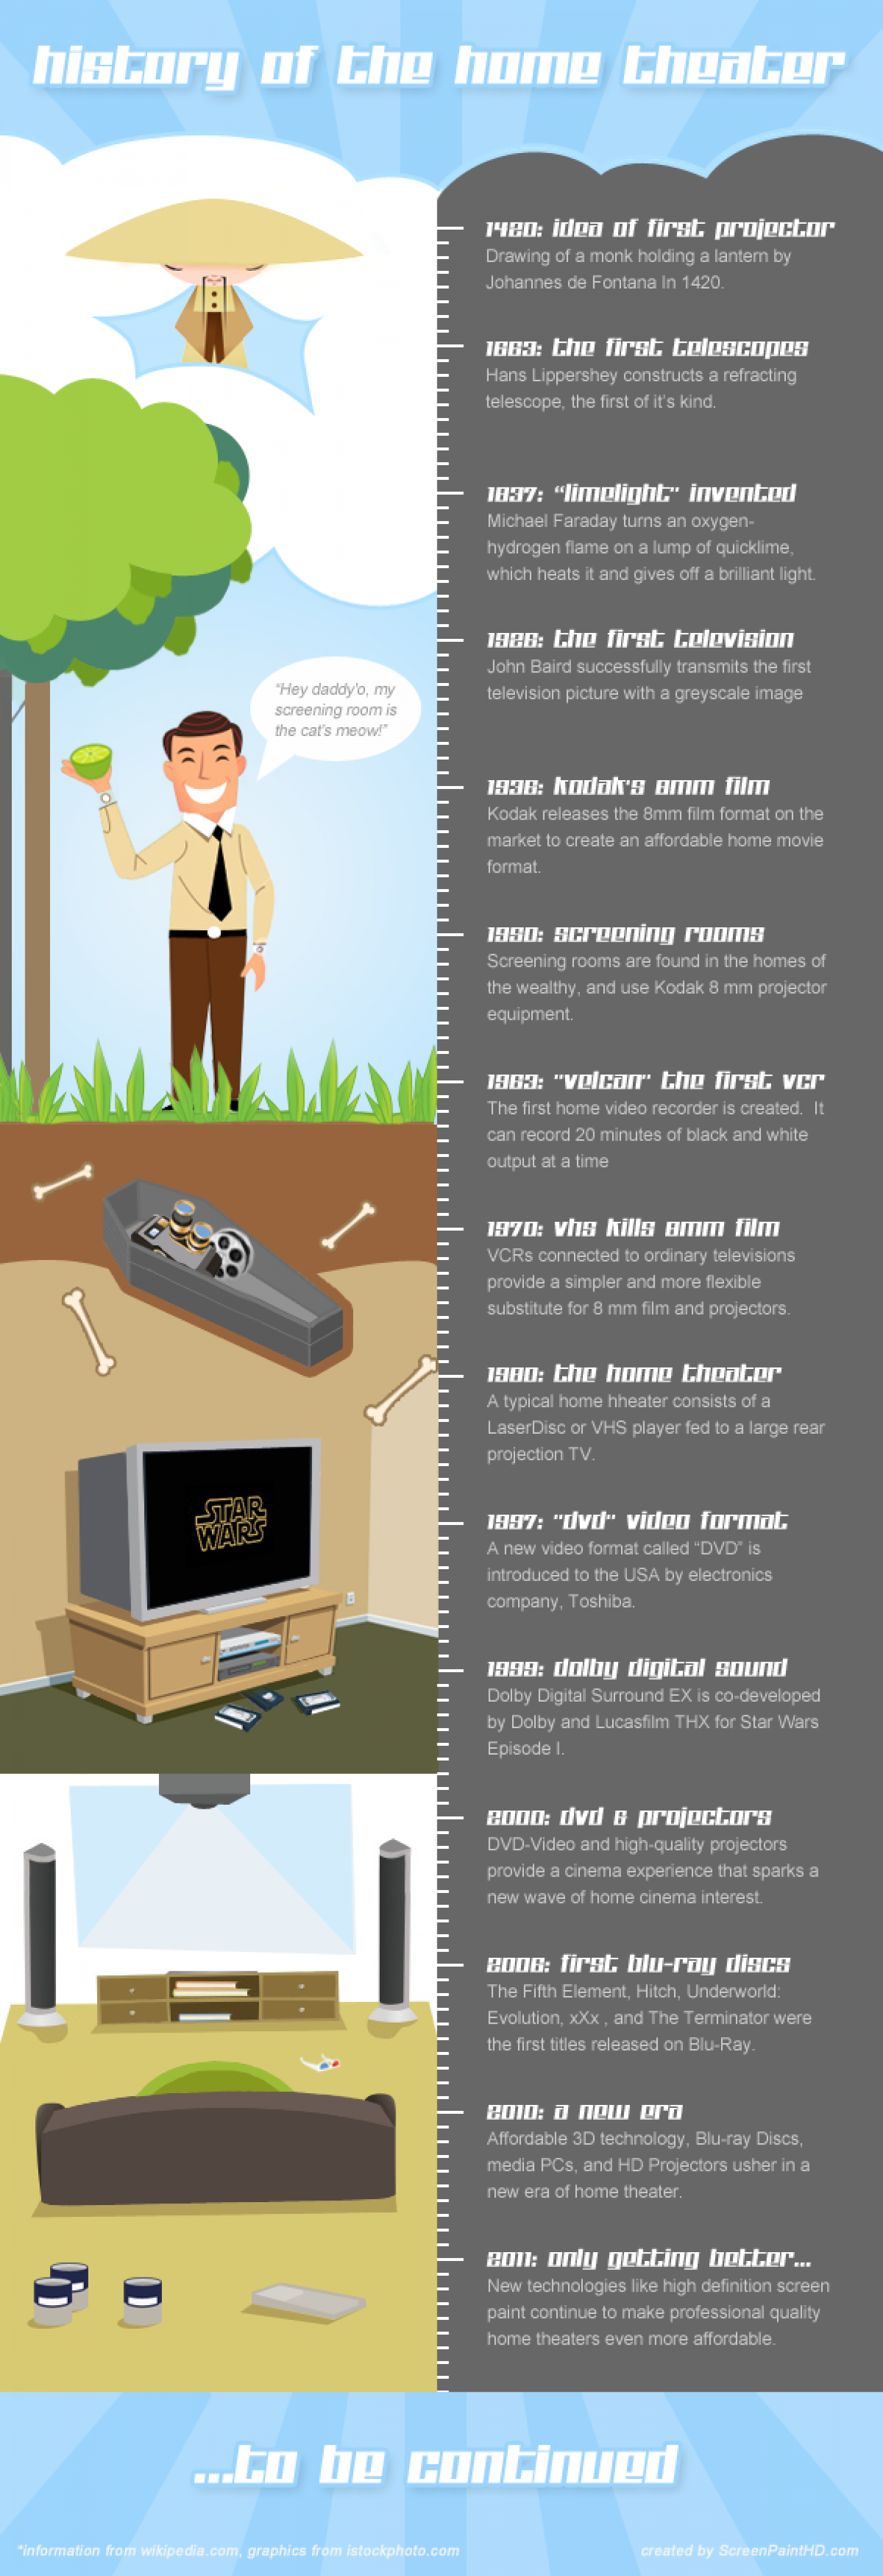 The History of the Home Theater Infographic